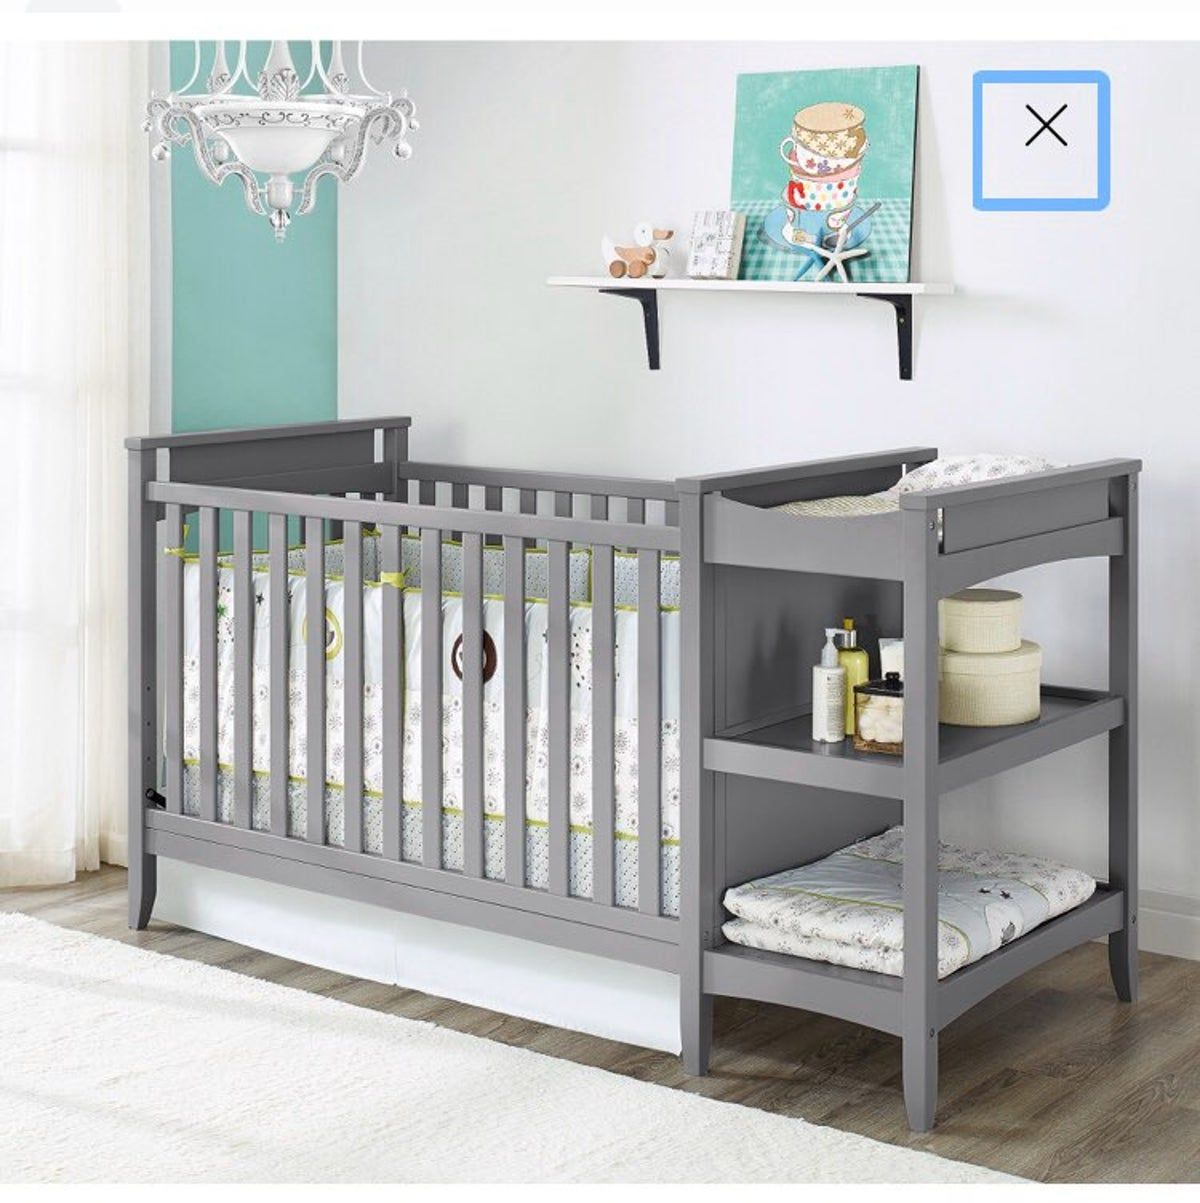 Pin By Makenna Penewit On Nursery In 2020 Crib And Changing Table Combo Crib With Changing Table Baby Furniture